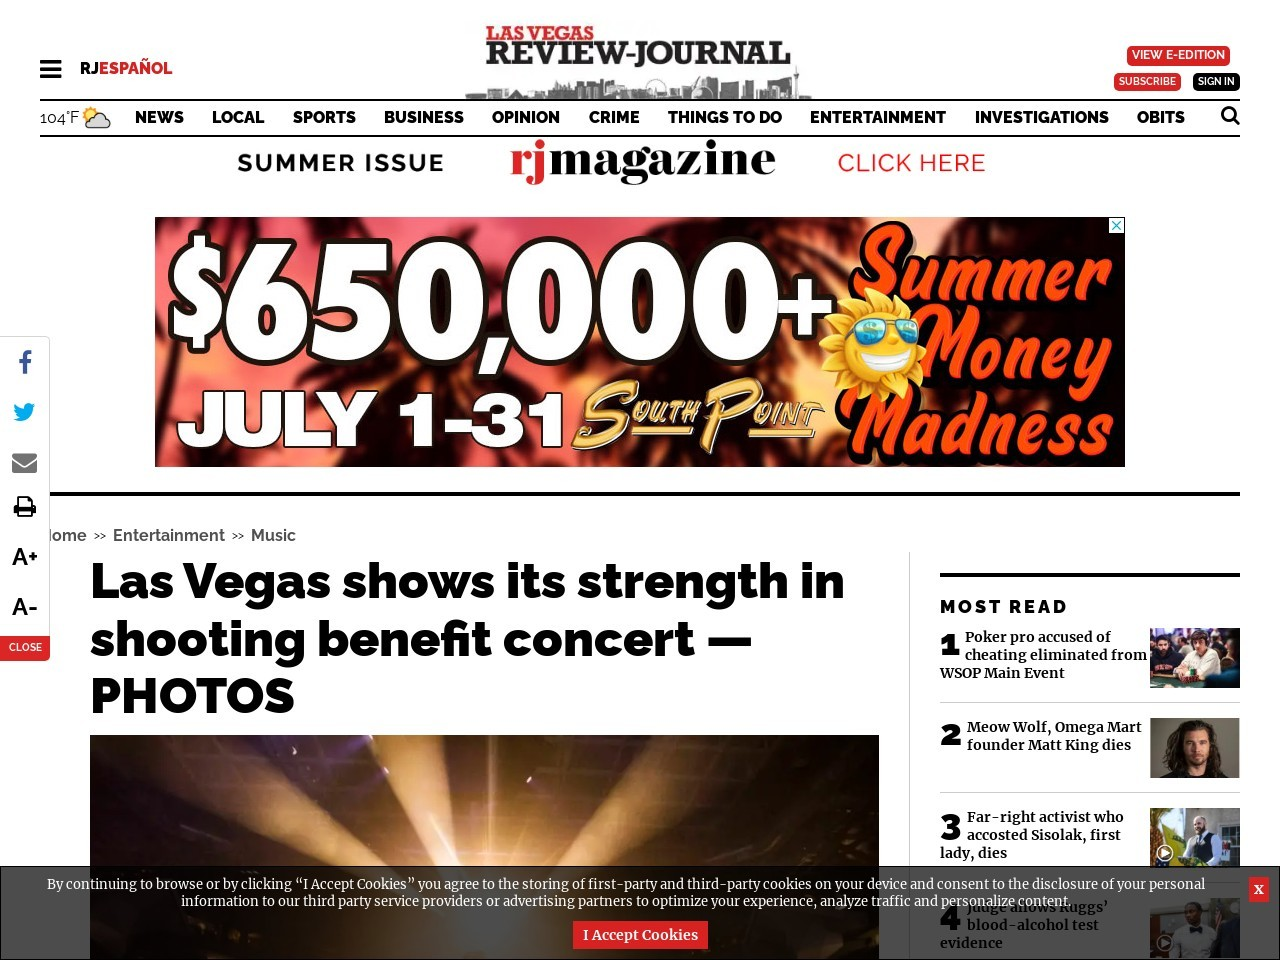 Las Vegas shows its strength in shooting benefit concert — PHOTOS